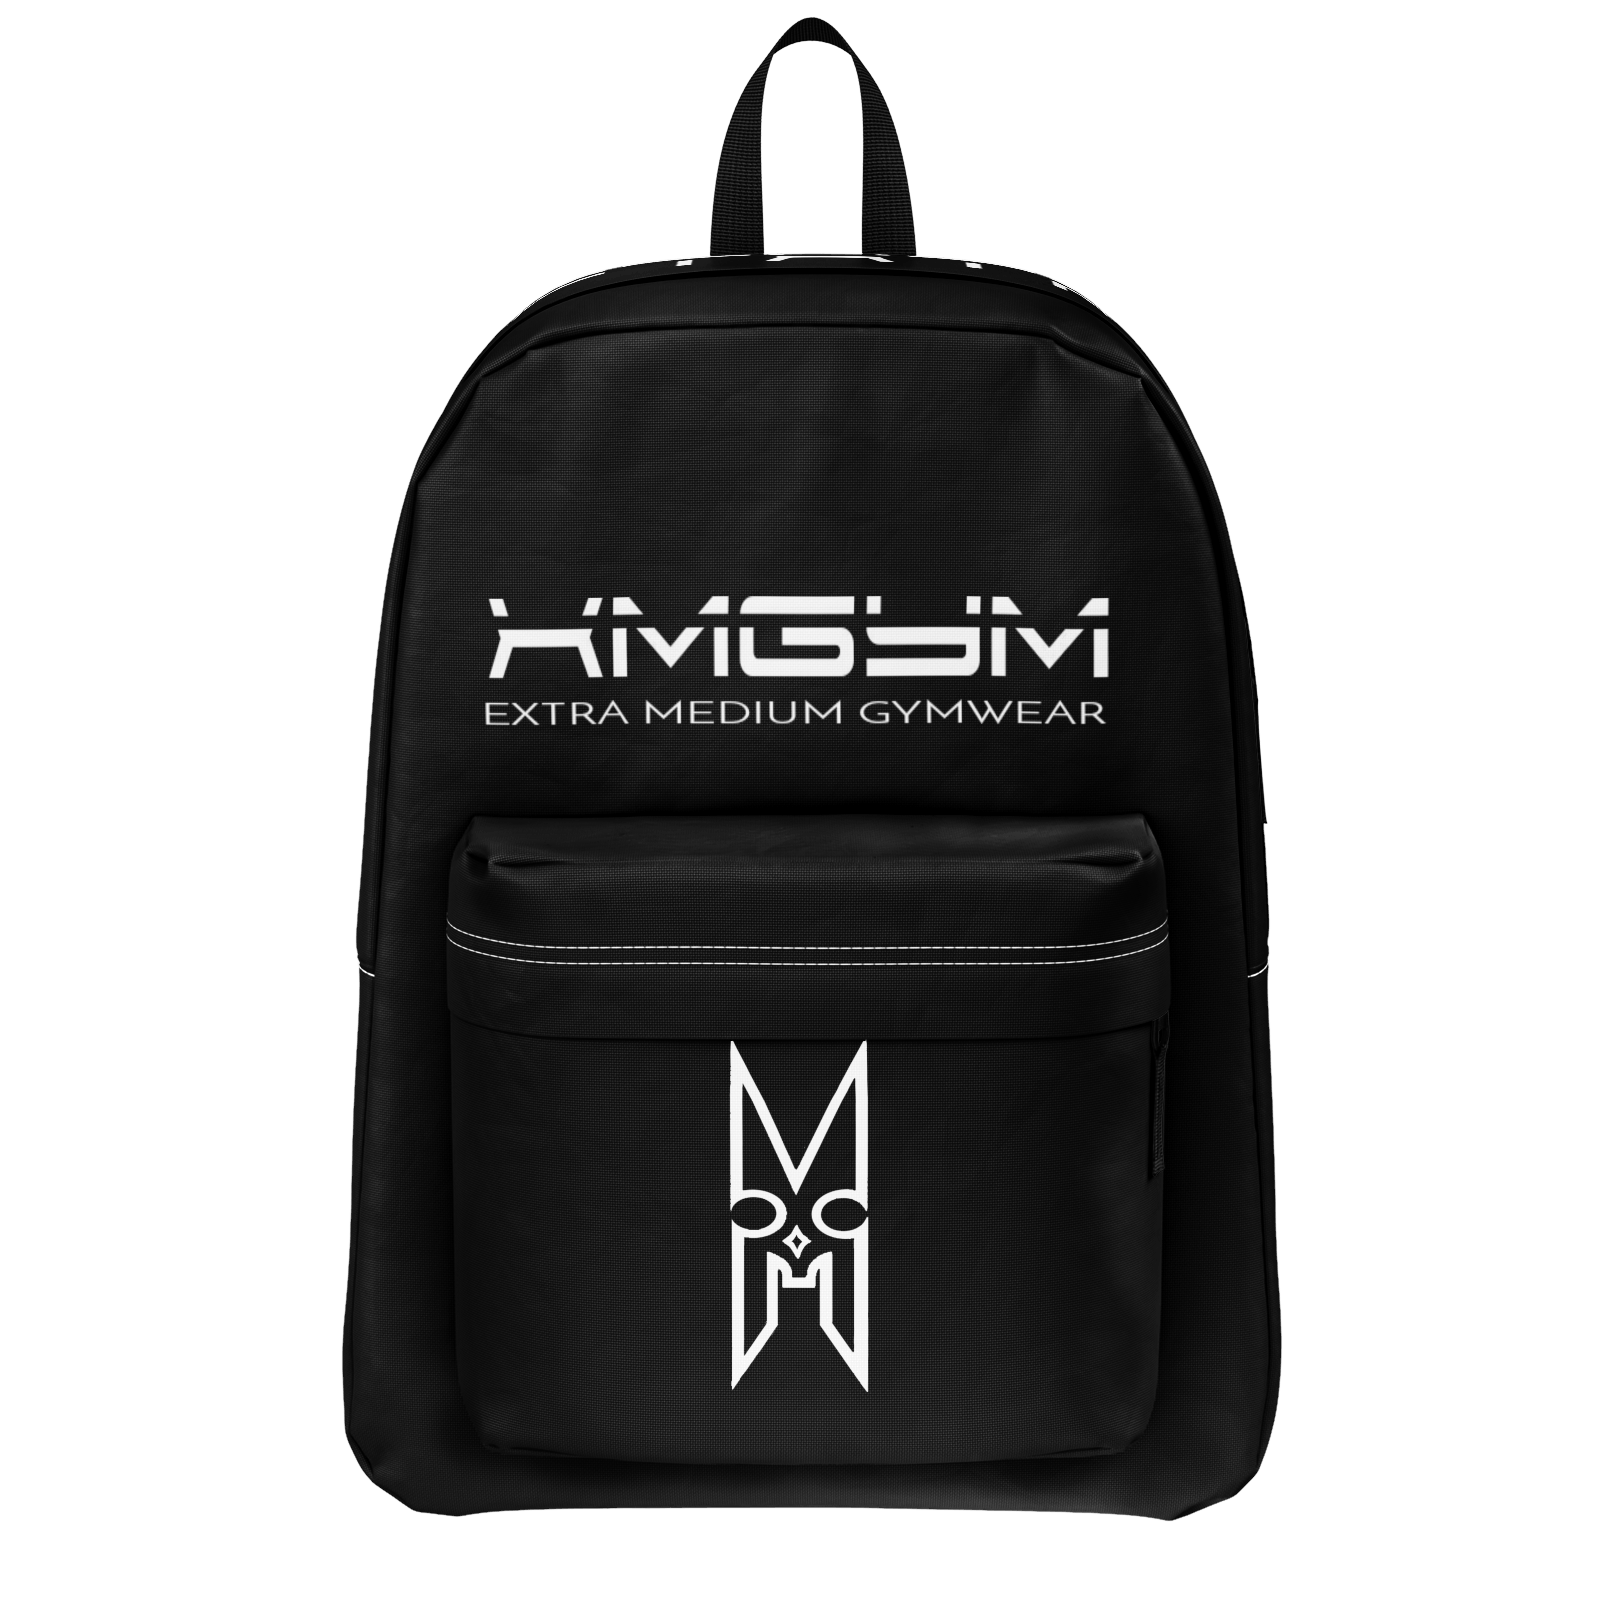 XMGYM ODYSSEY BLACK BACKPACK